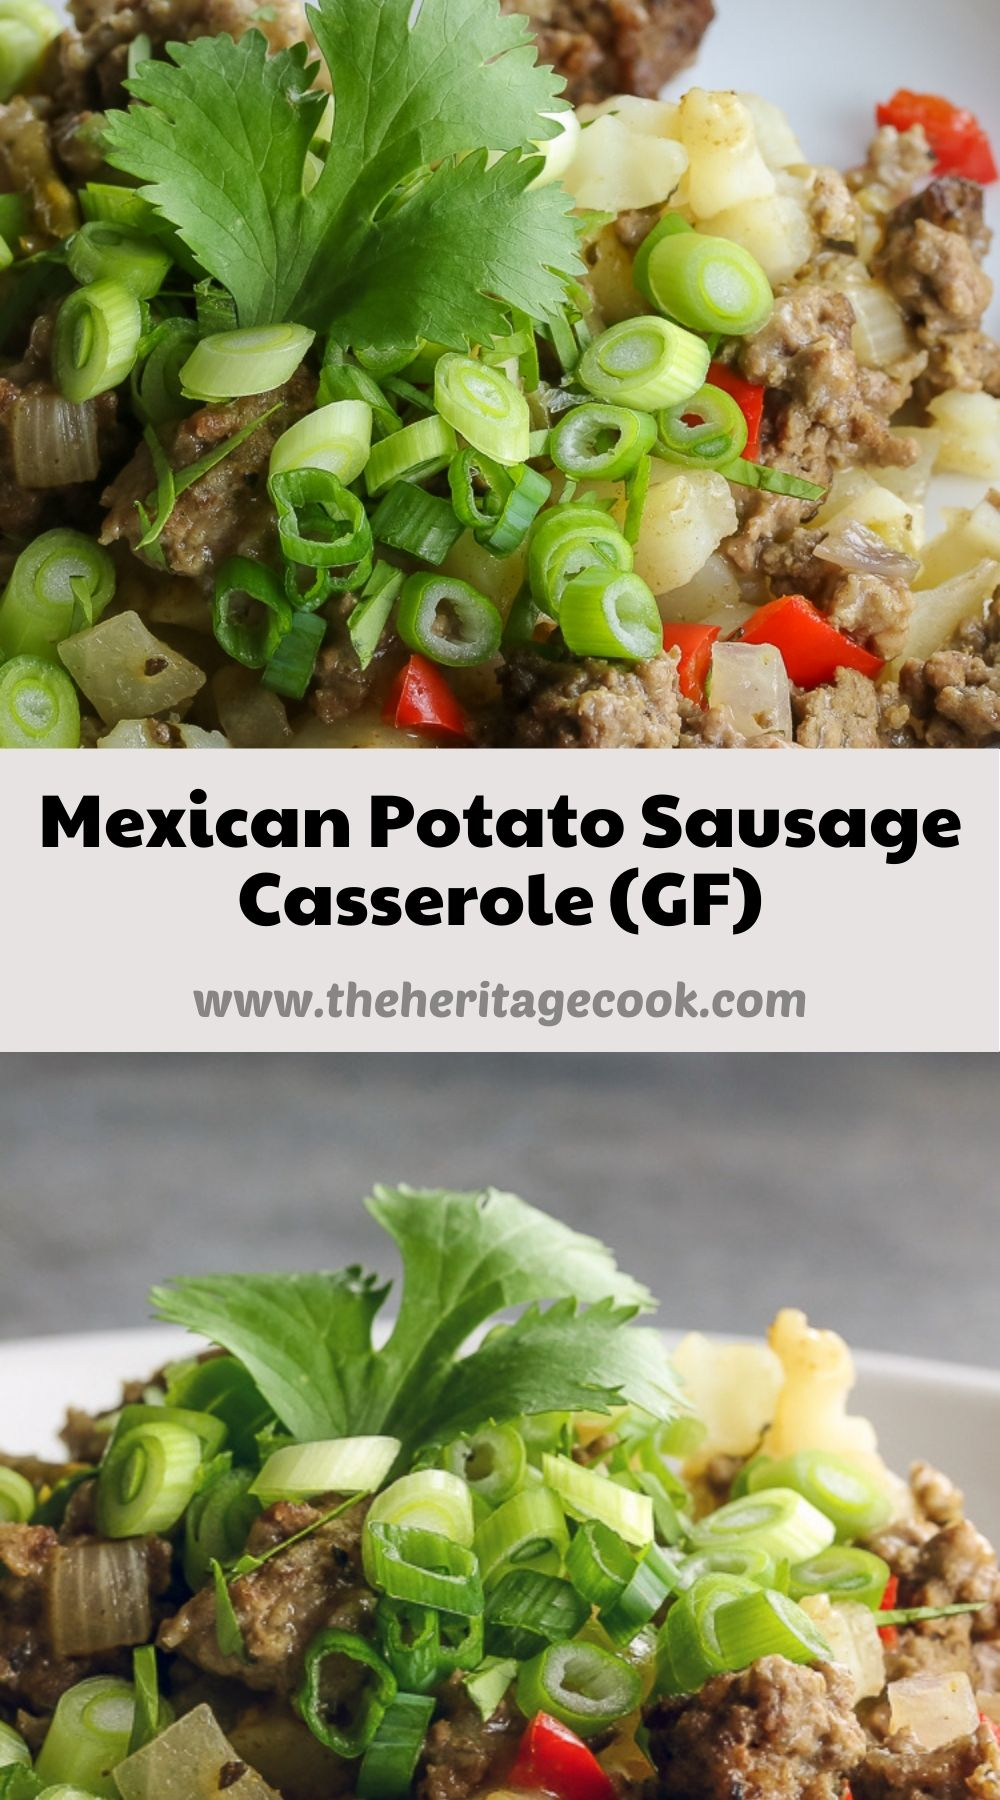 Mexican Potato Sausage Casserole © 2021 Jane Bonacci, The Heritage Cook